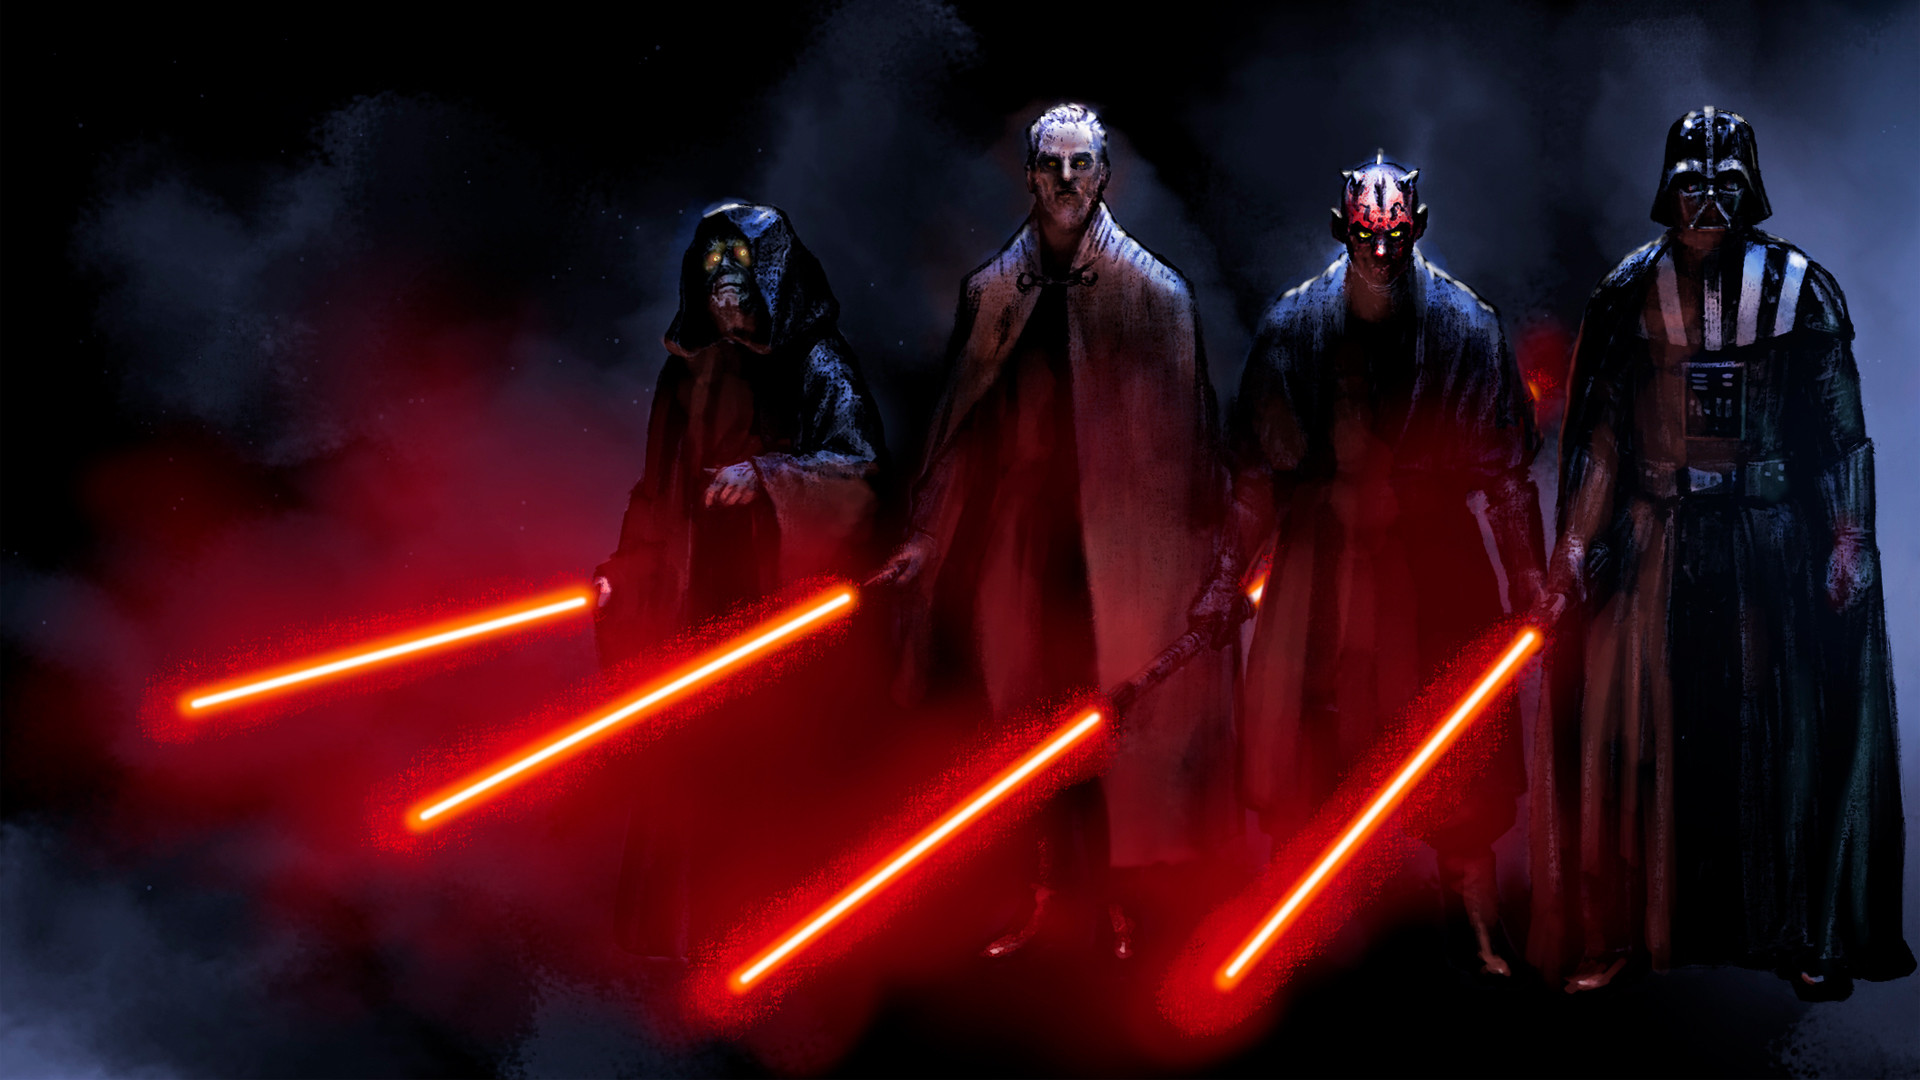 1920x1080 Wallpaper Abyss Explore The Collection Star Wars Movie